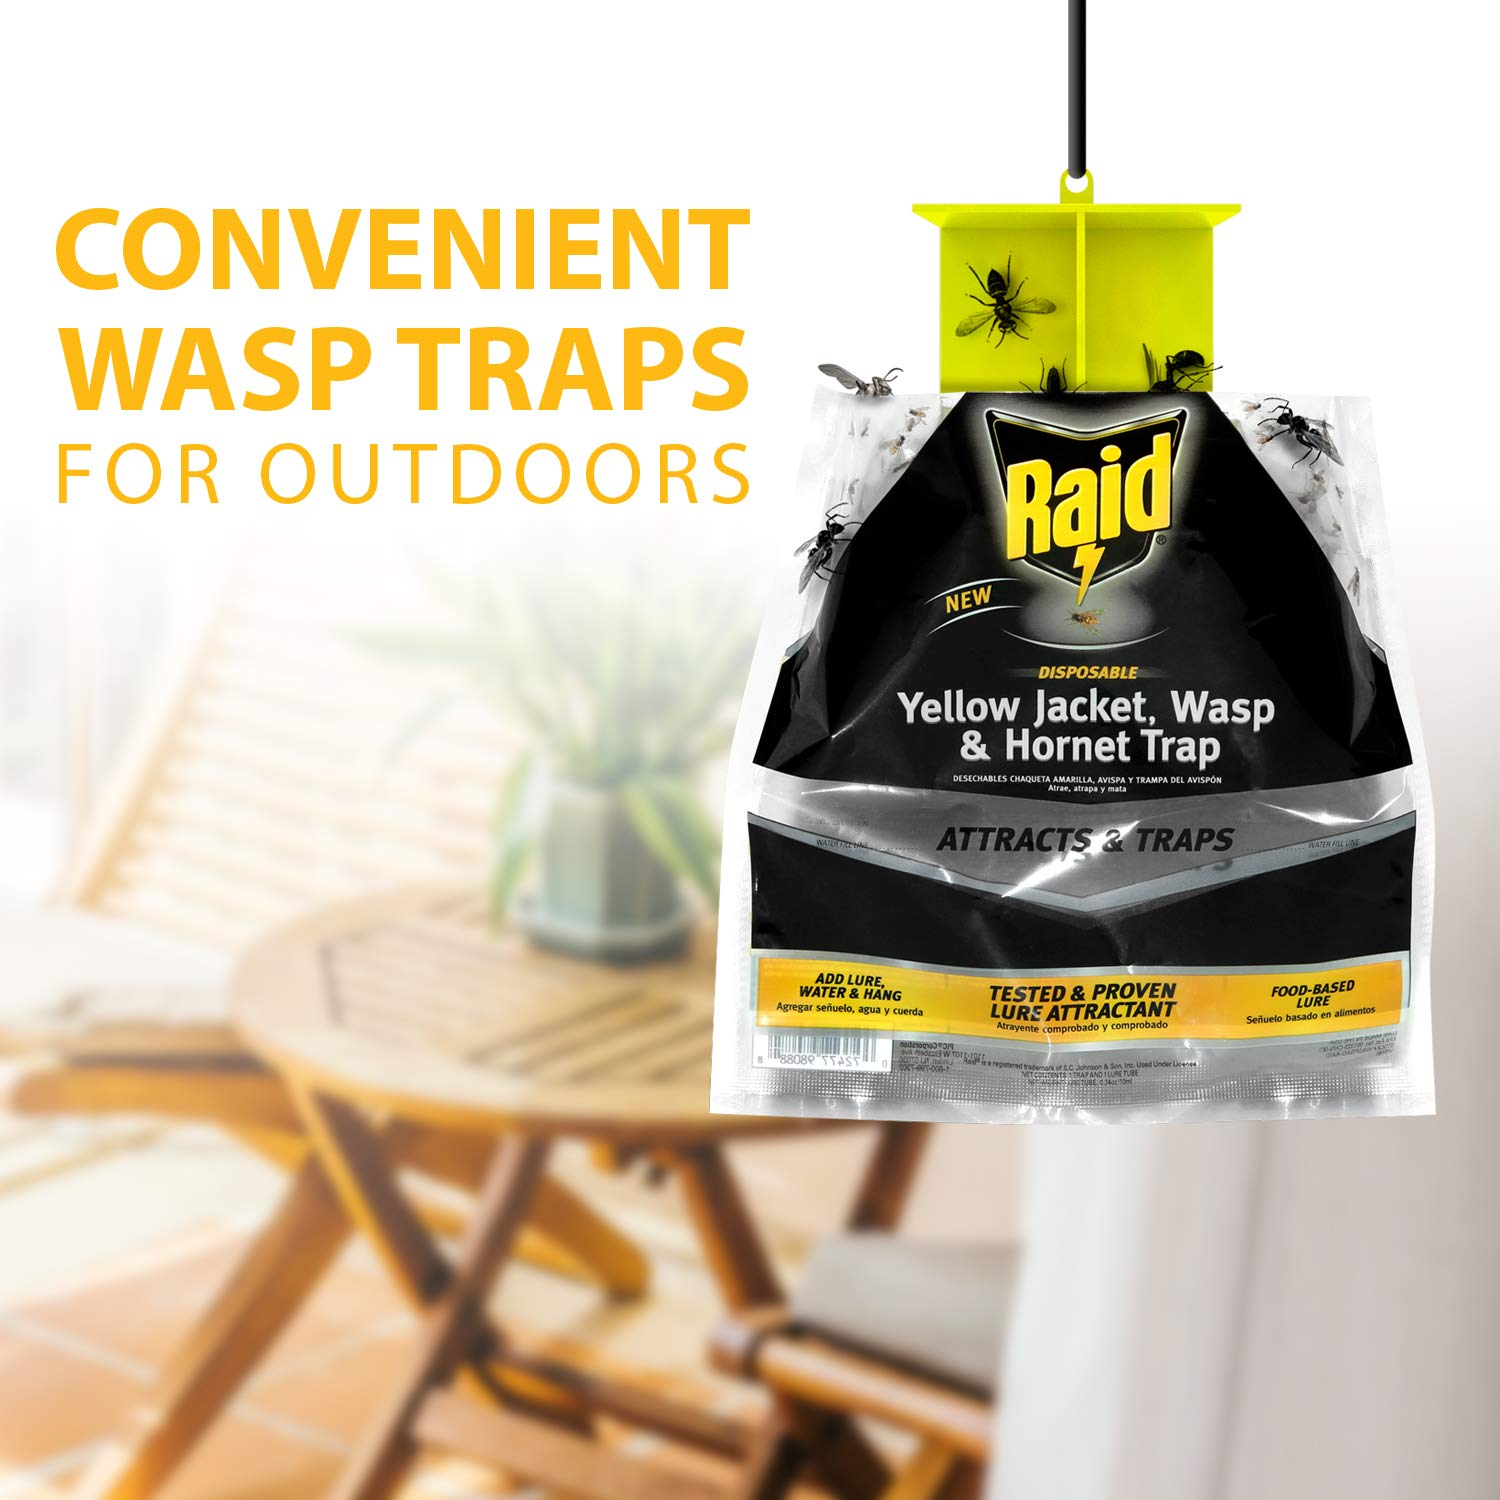 Raid Wasp Trap, Yellow Jacket Trap & Hornet Traps for Outdoors (2-Pack), Hanging Insect Trap, Disposable Wasp, Hornet & Yellow Jacket Traps ...